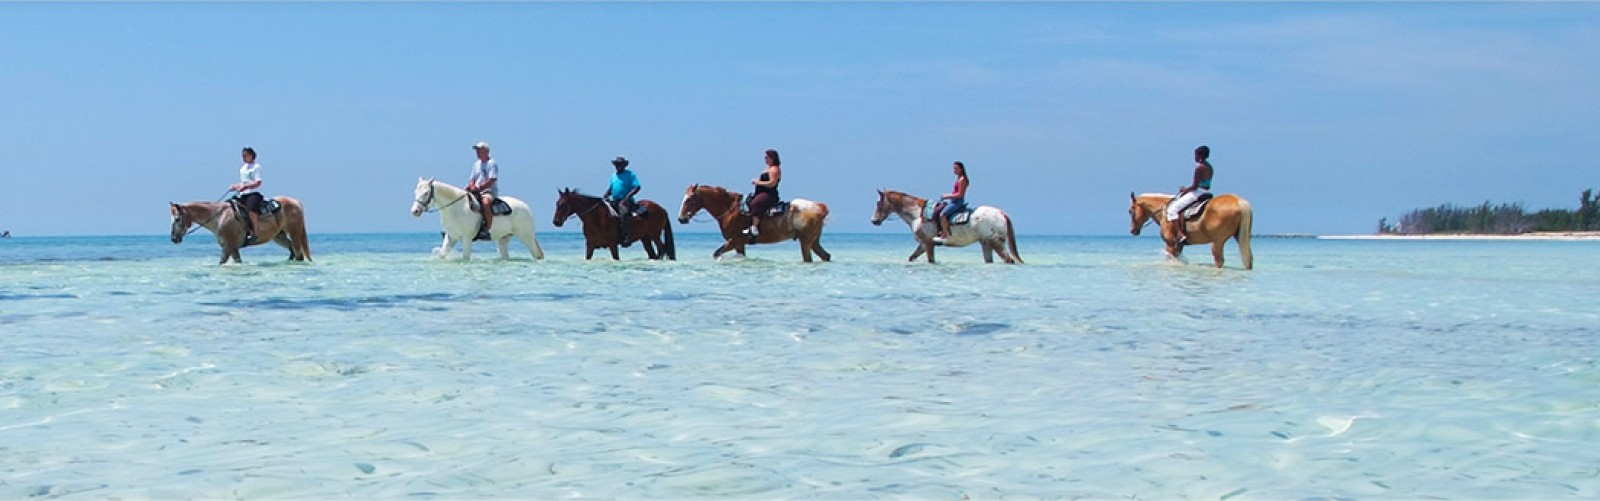 Horses trotting through the water